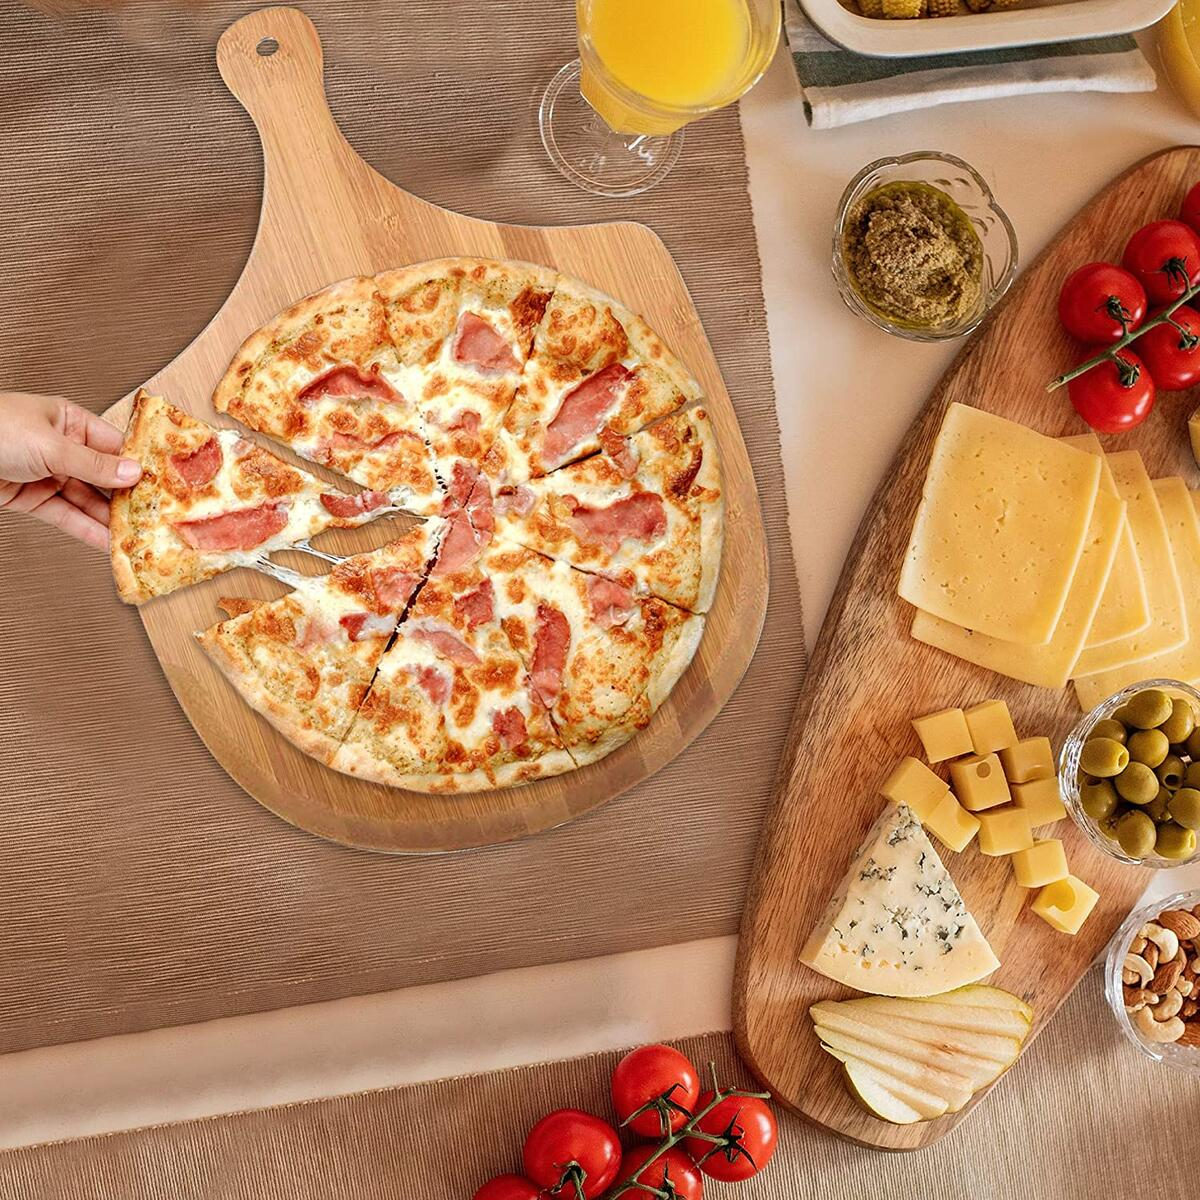 """Wooden Pizza Peel 12 Inch by 17 Inch, Natural Bamboo Pizza Cutting Board With Handle, 12"""" x 17"""" For Baking Pizza, Bread Peel, Cutting Fruit, Vegetables, Cheese."""